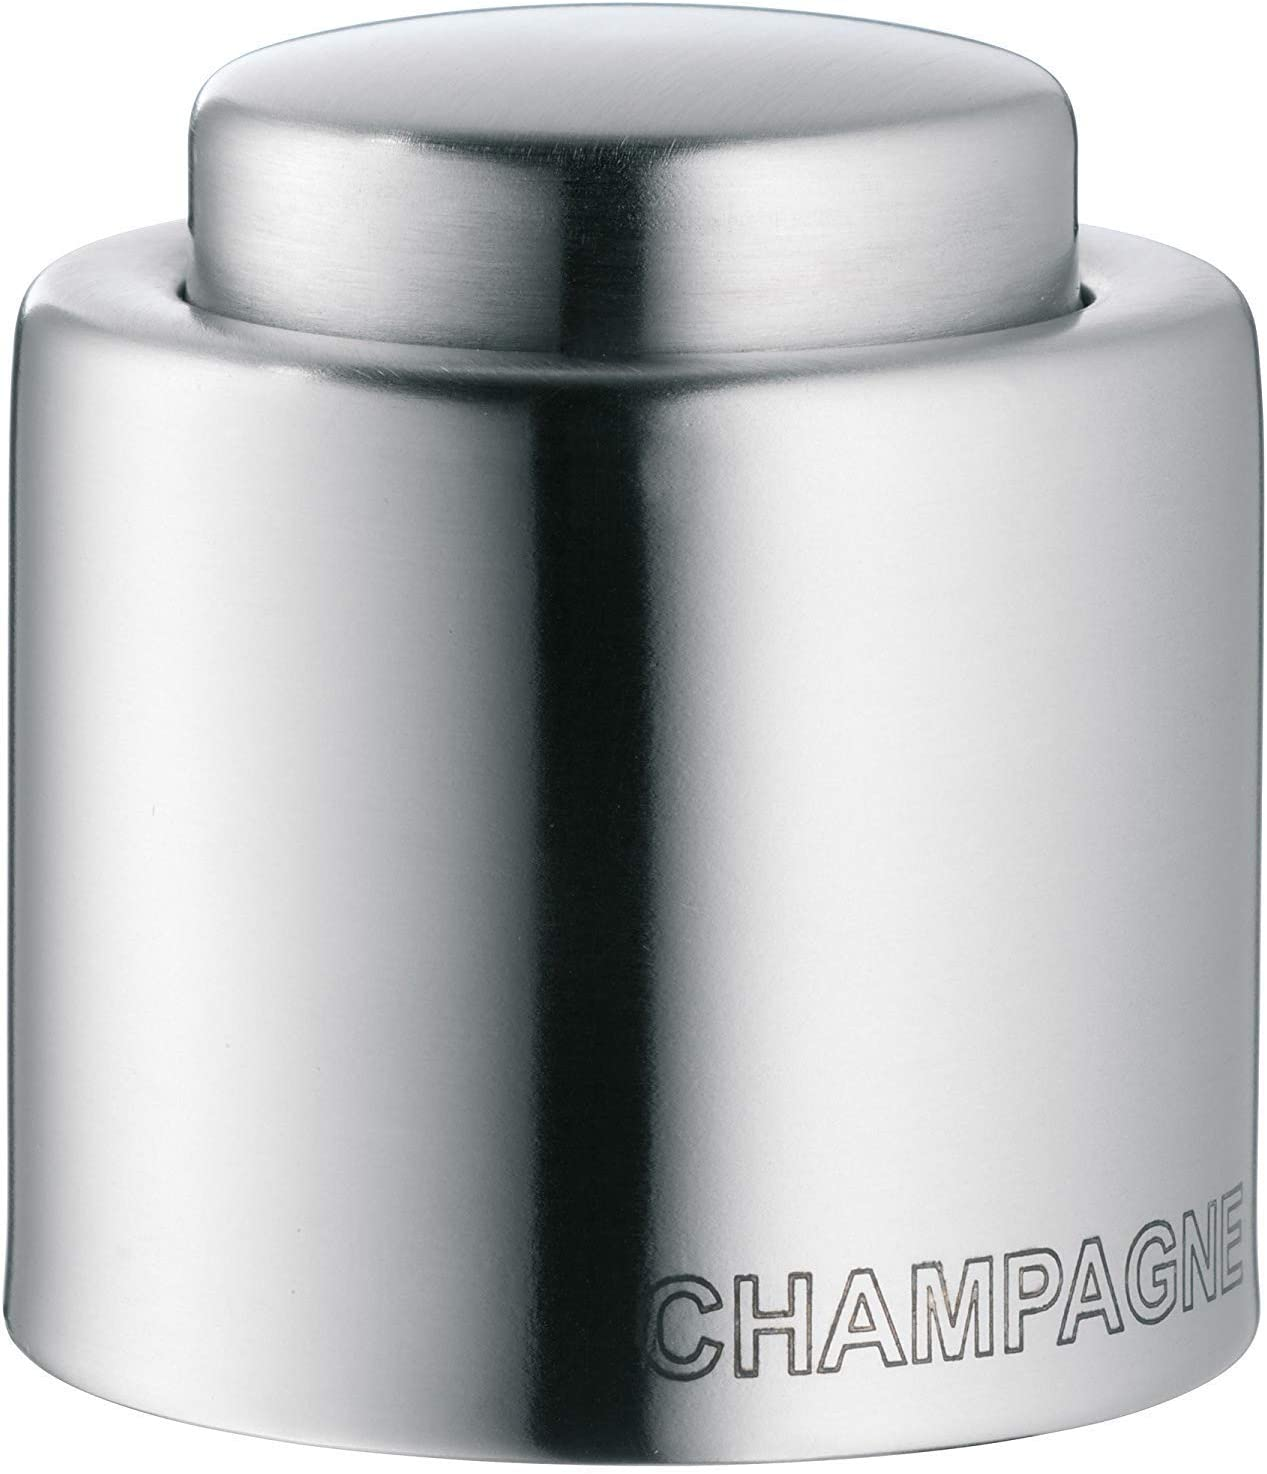 Silver Stainless Steel WMF Clever /& More Champagne Bottle Seal